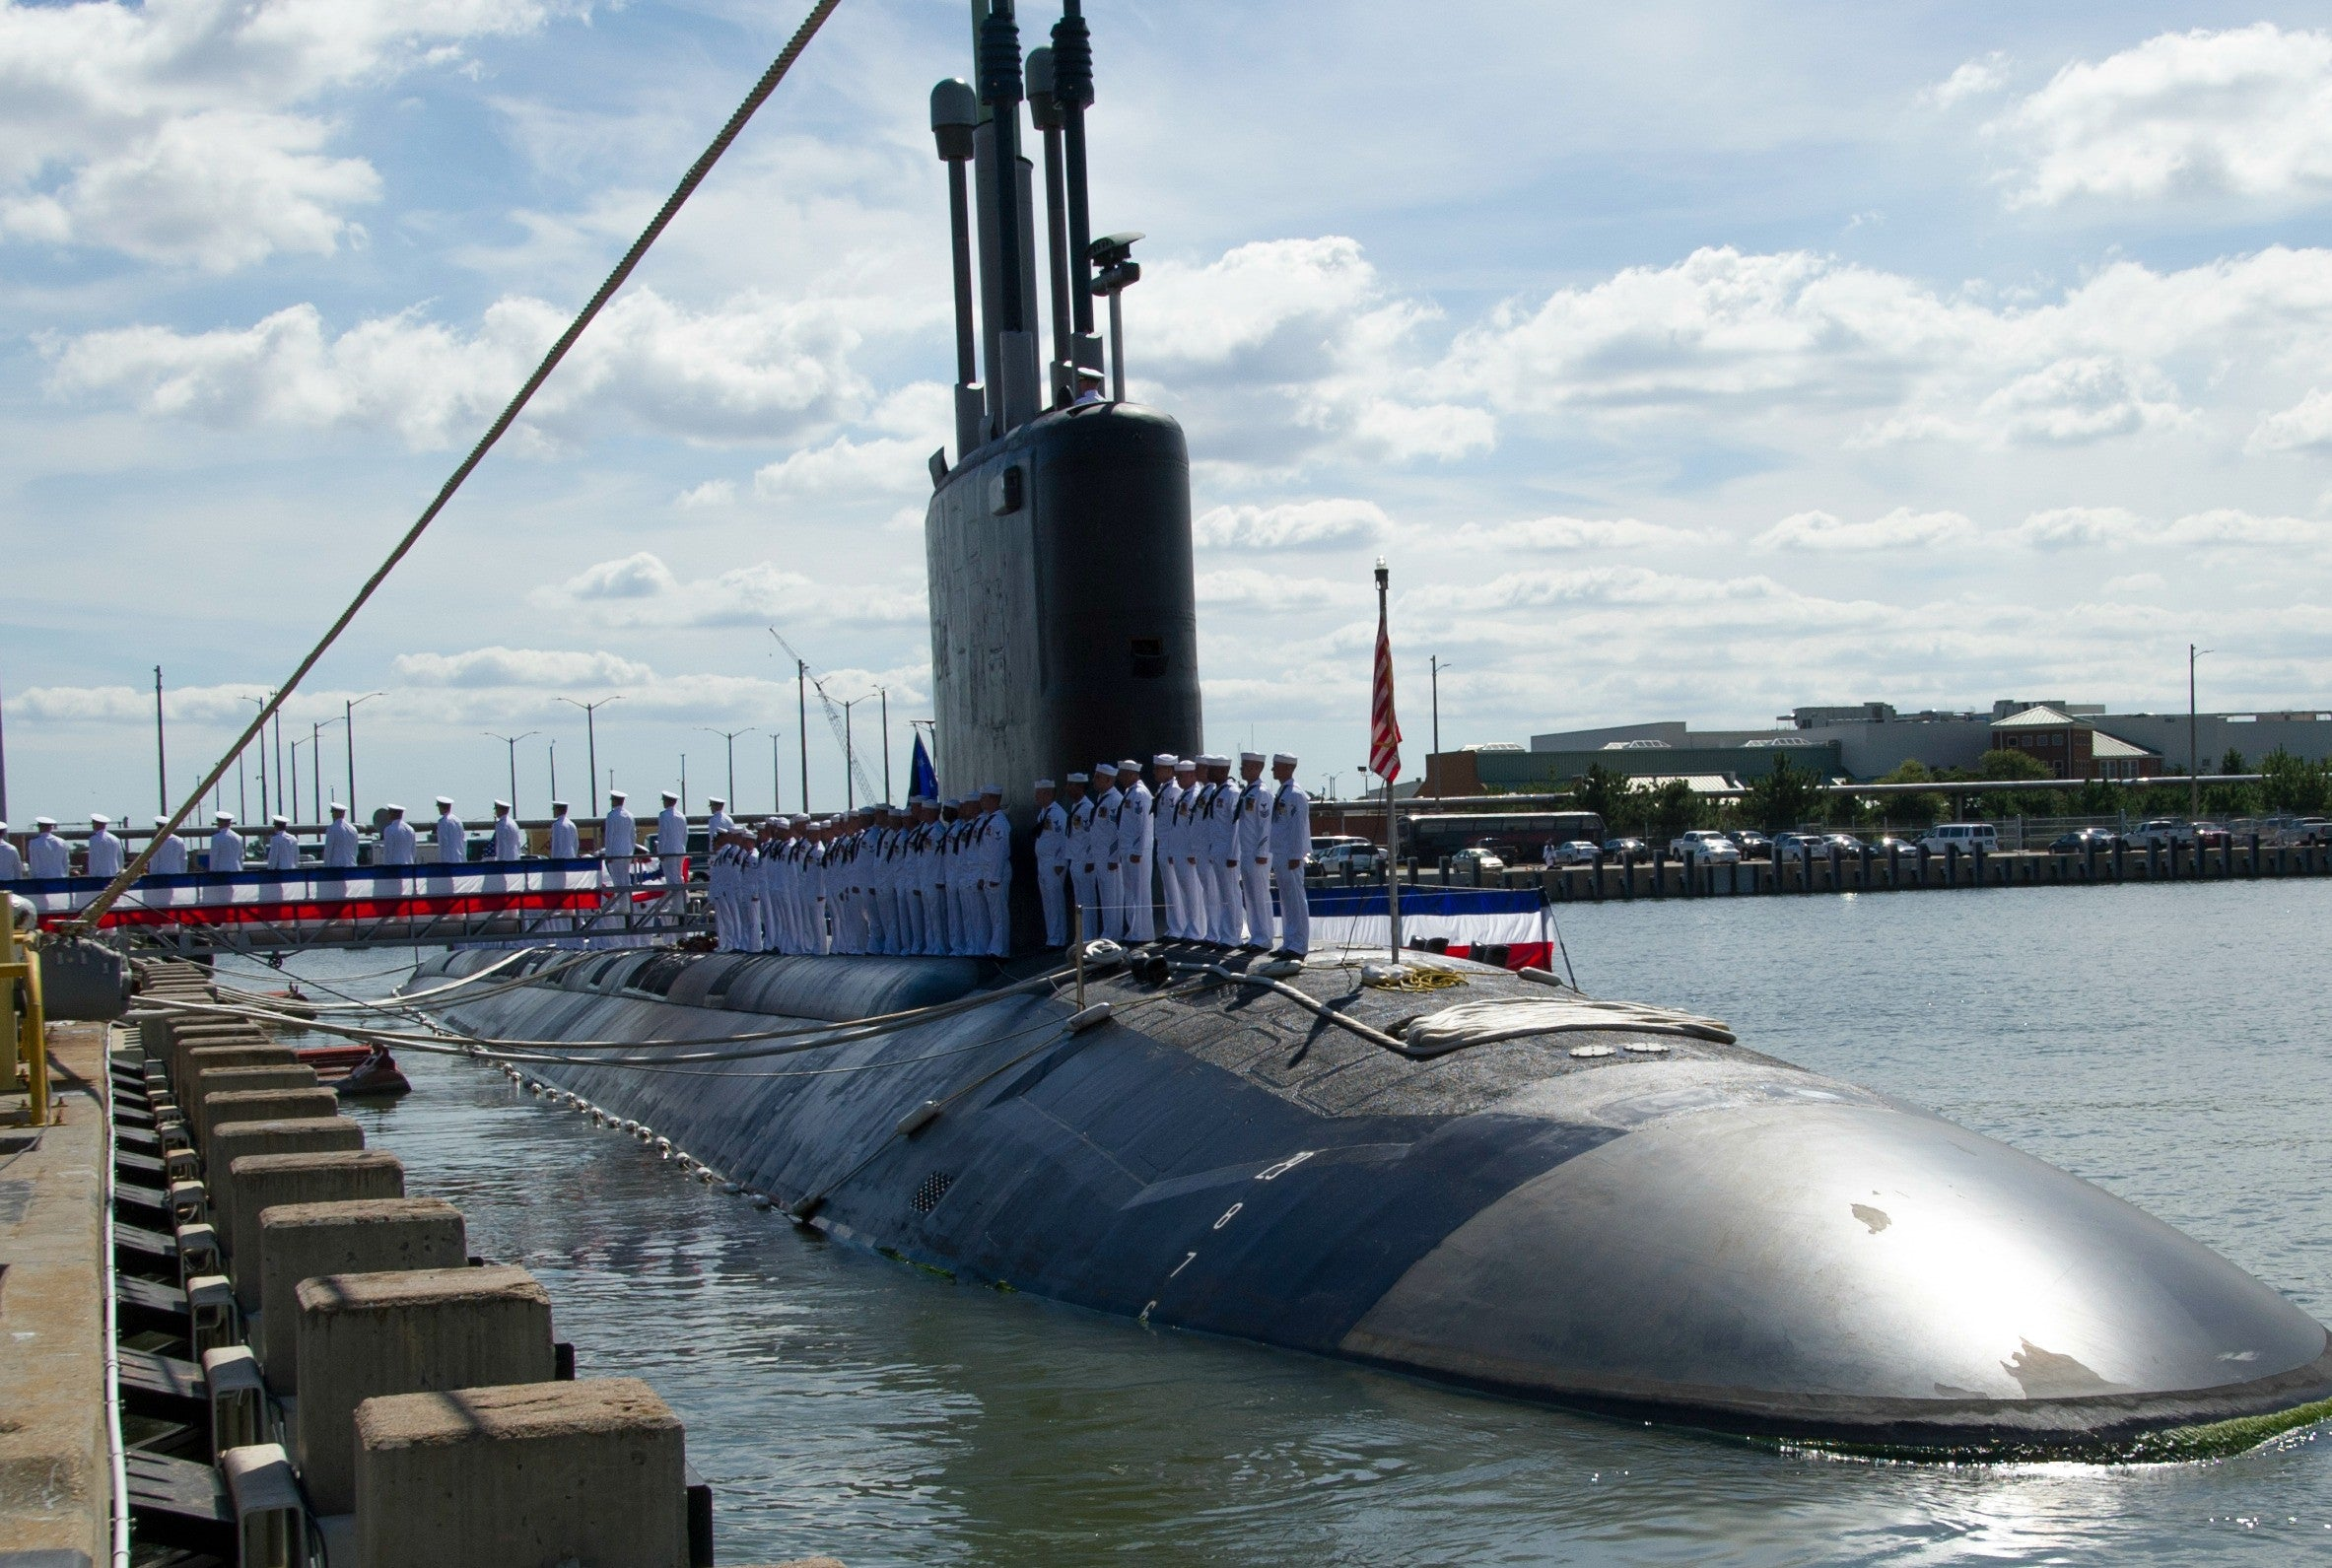 "USS Minnesota SSN-783 Norfolk, VA September 7, 2013 - 8 x 12"" Photograph"